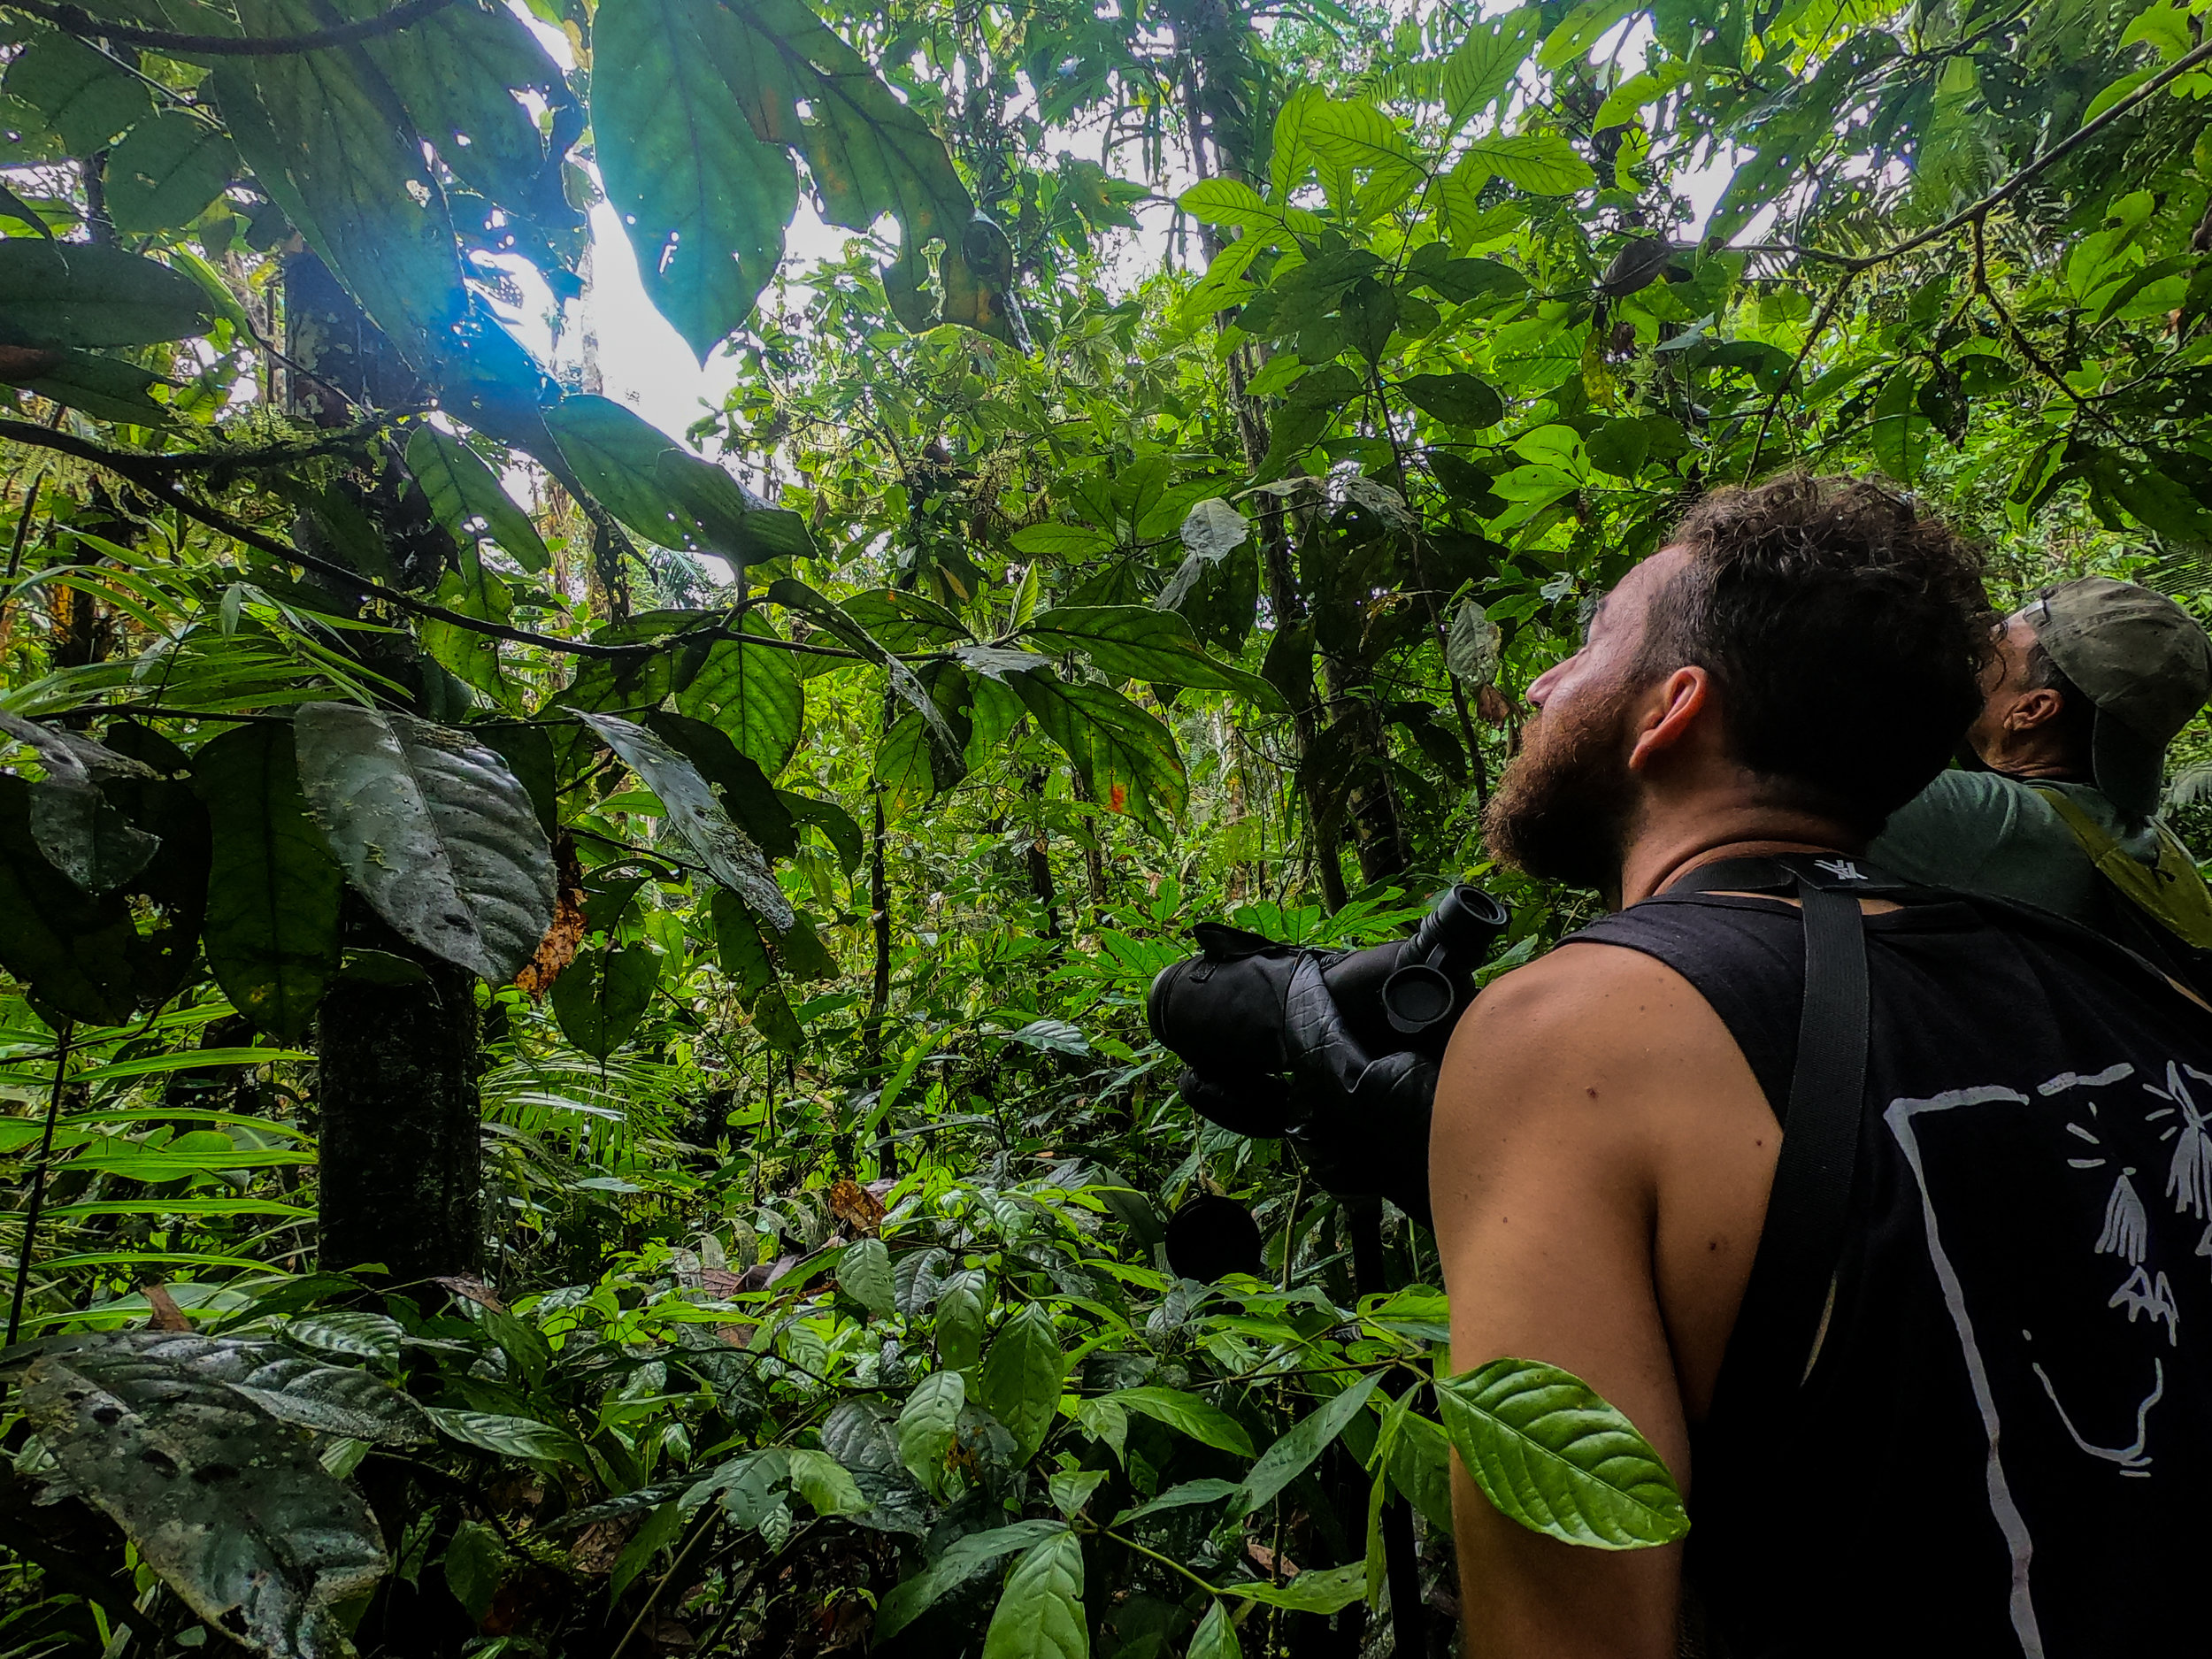 Ecuador Journey - Come on this 12-day adventure to different ecosystems of Ecuador, including the Amazon Rainforest. One in a lifetime experience with indigenous people learning about their culture, way of living, their deep connection and knowledge of nature.